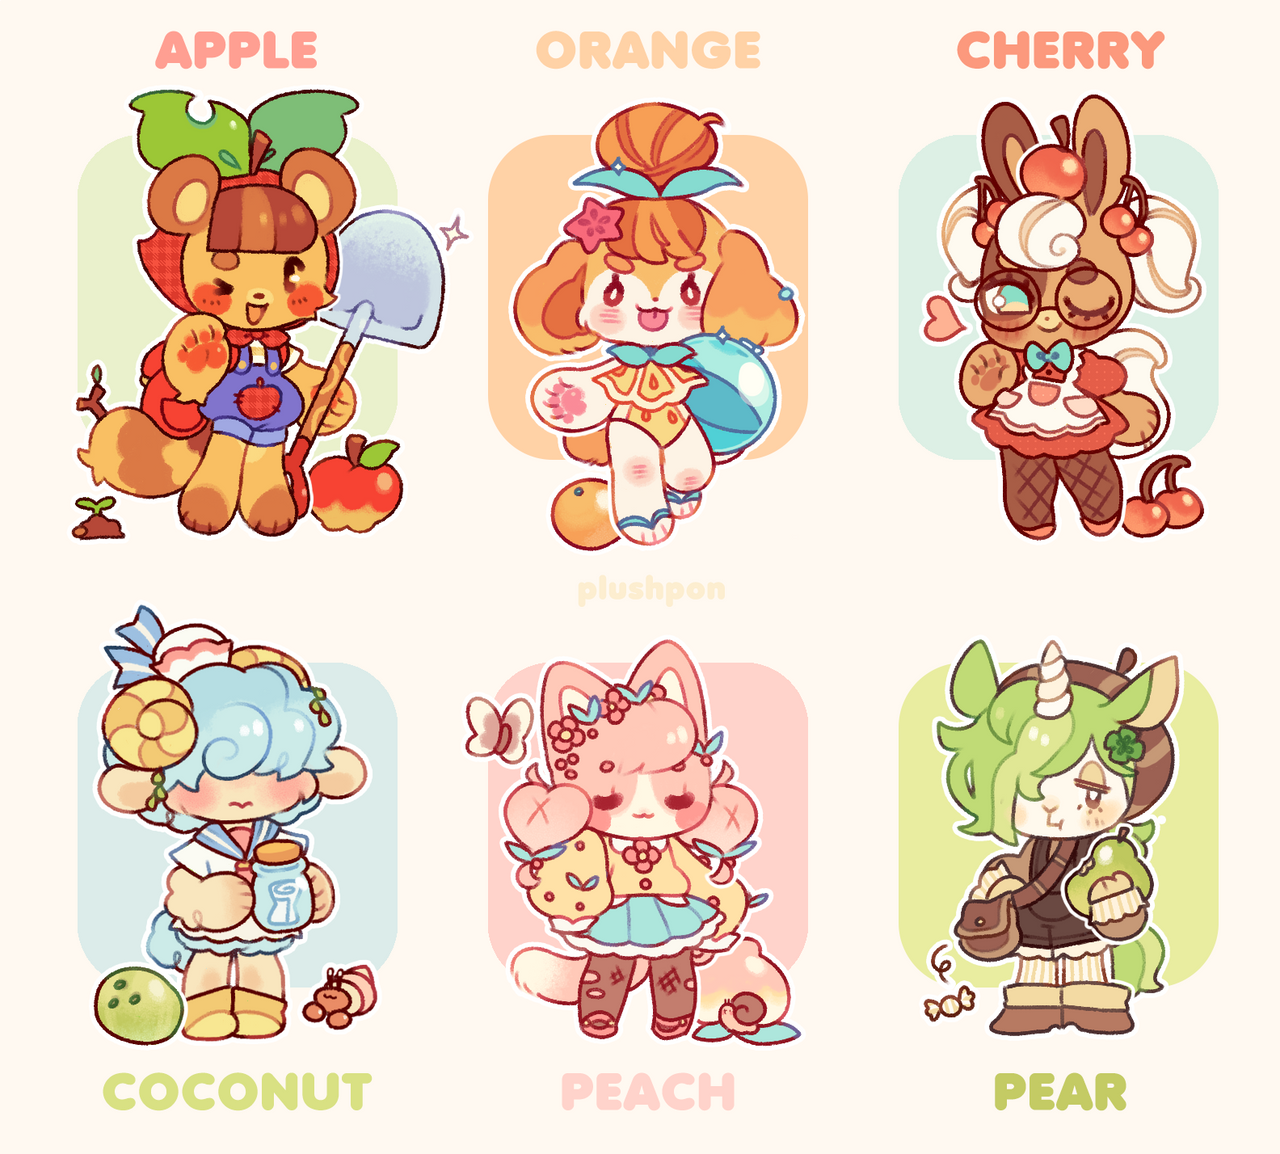 Closed Animal Crossing Villager Mascots By Plushpon On Deviantart